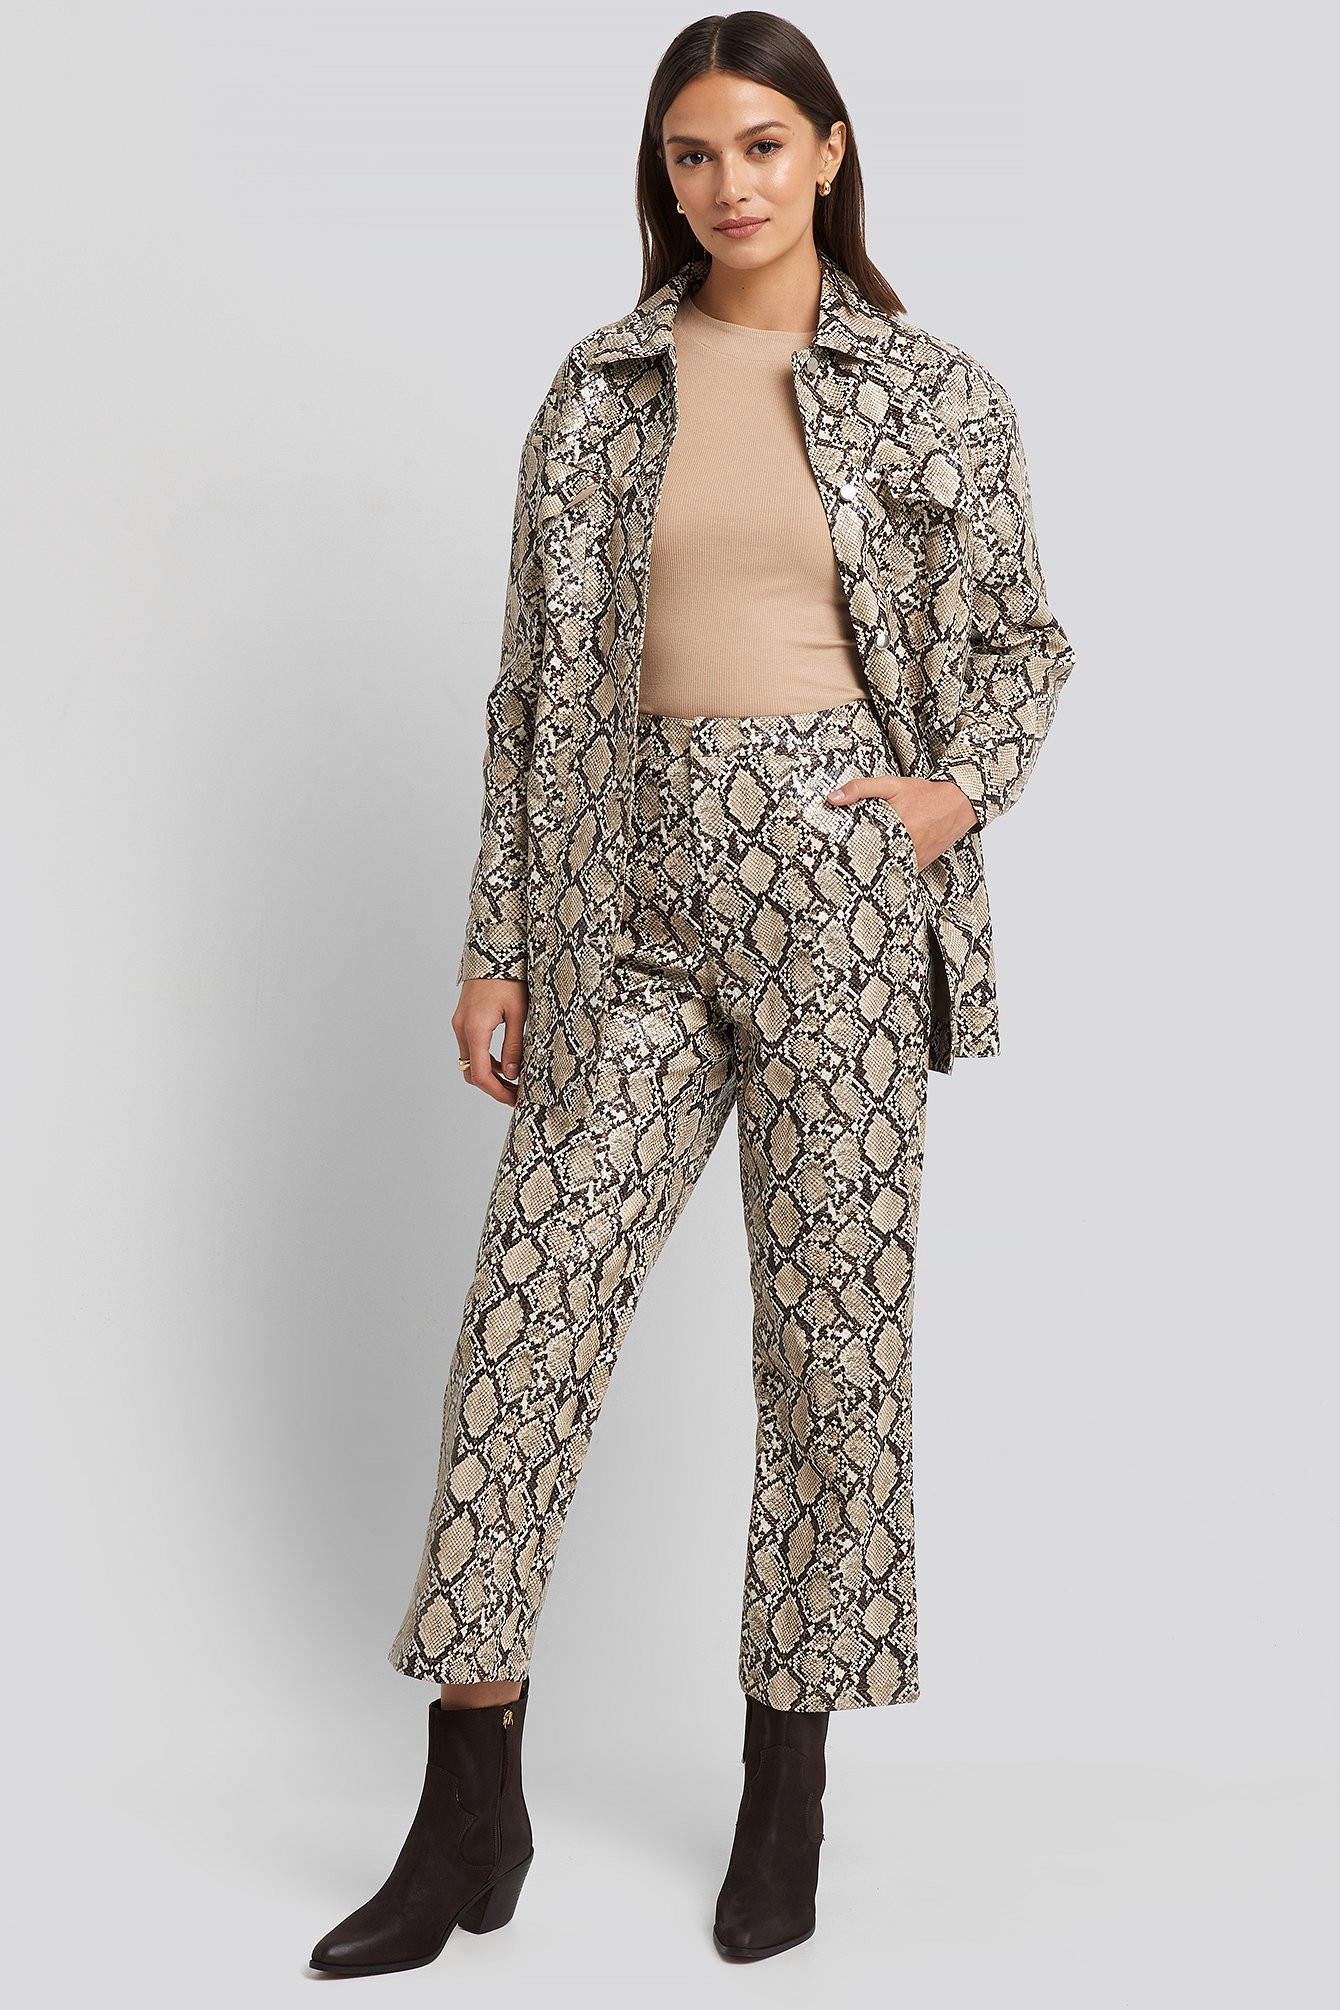 Snake Printed Cropped Pants Flerfarvet by Na Kd Trend